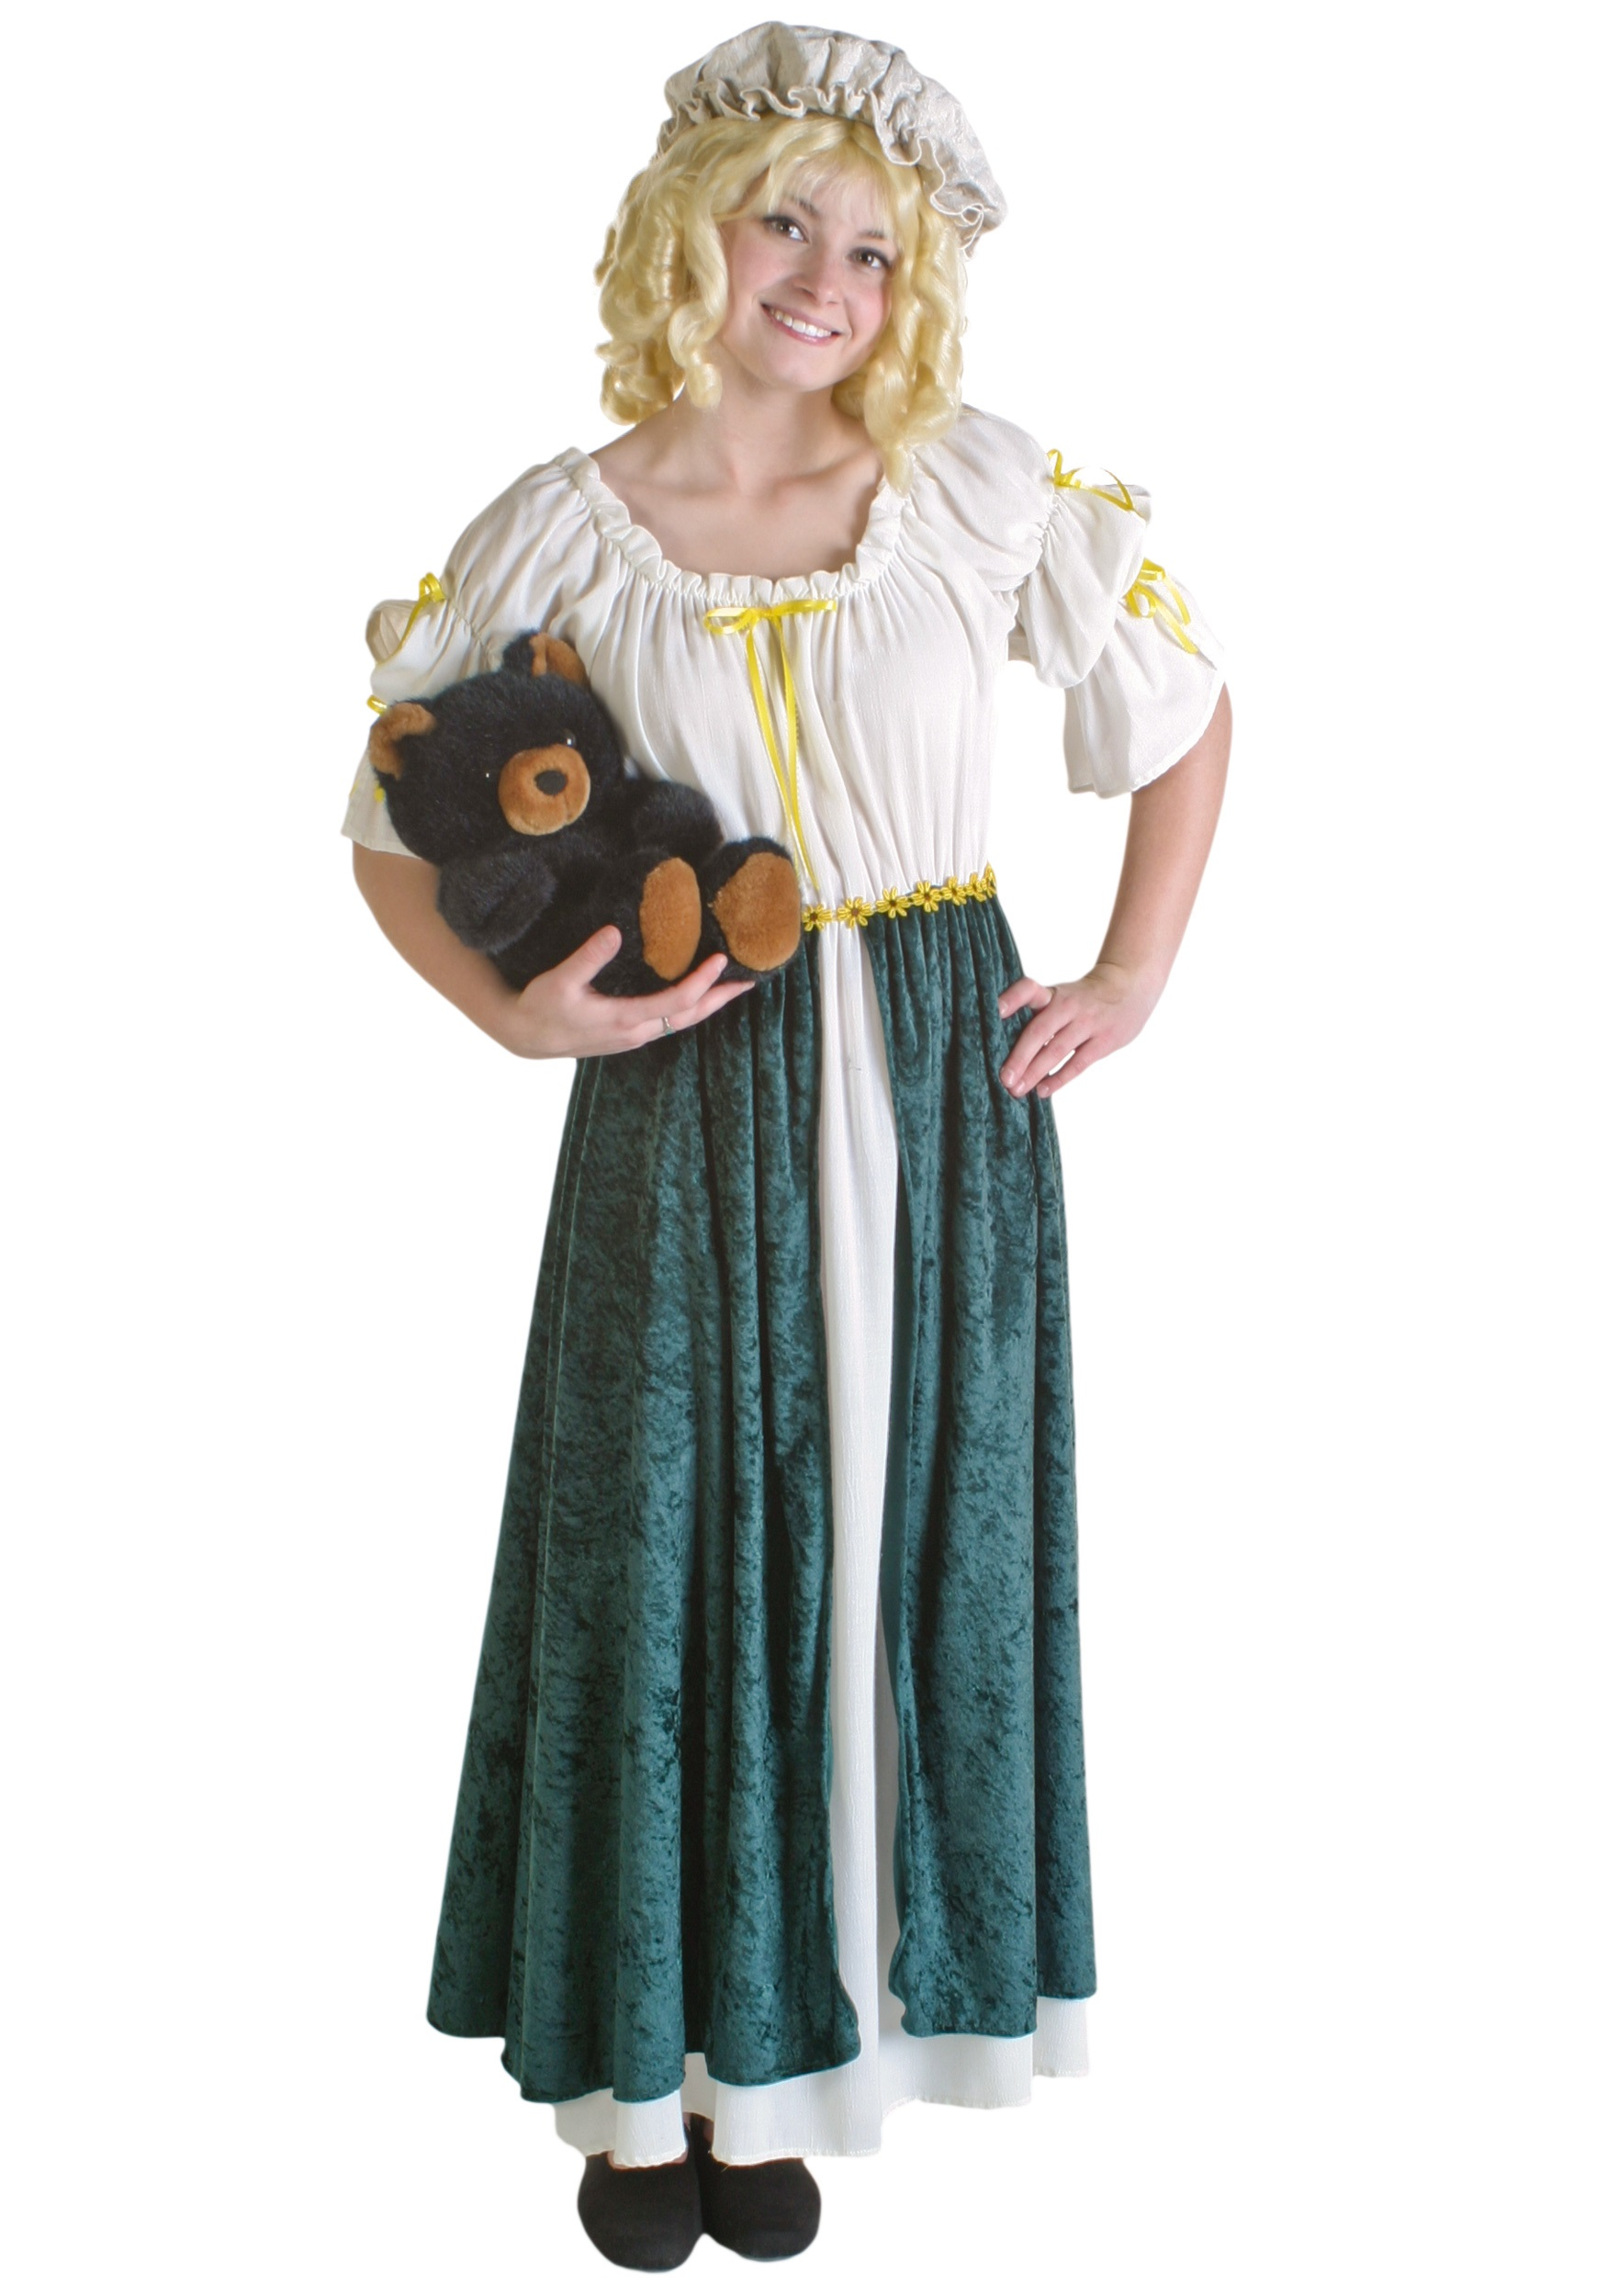 goldilocks costume - Goldilocks Halloween Costumes